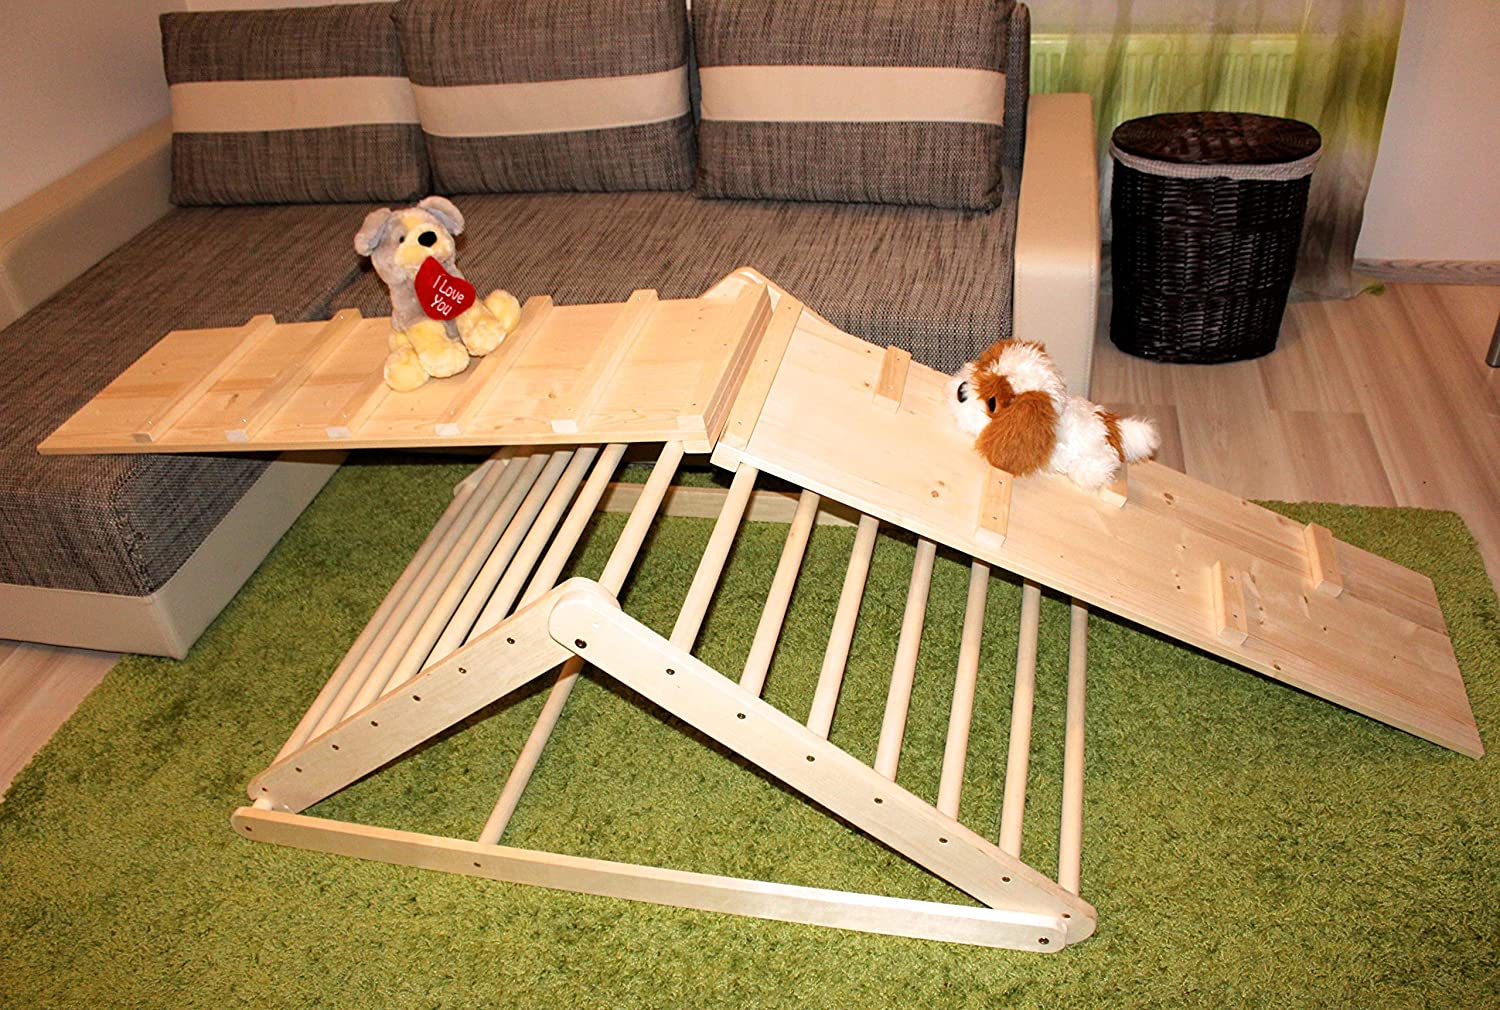 Pikler triangle, Step Triangle, Climbing triangle for toddlers . You can add ladder board.